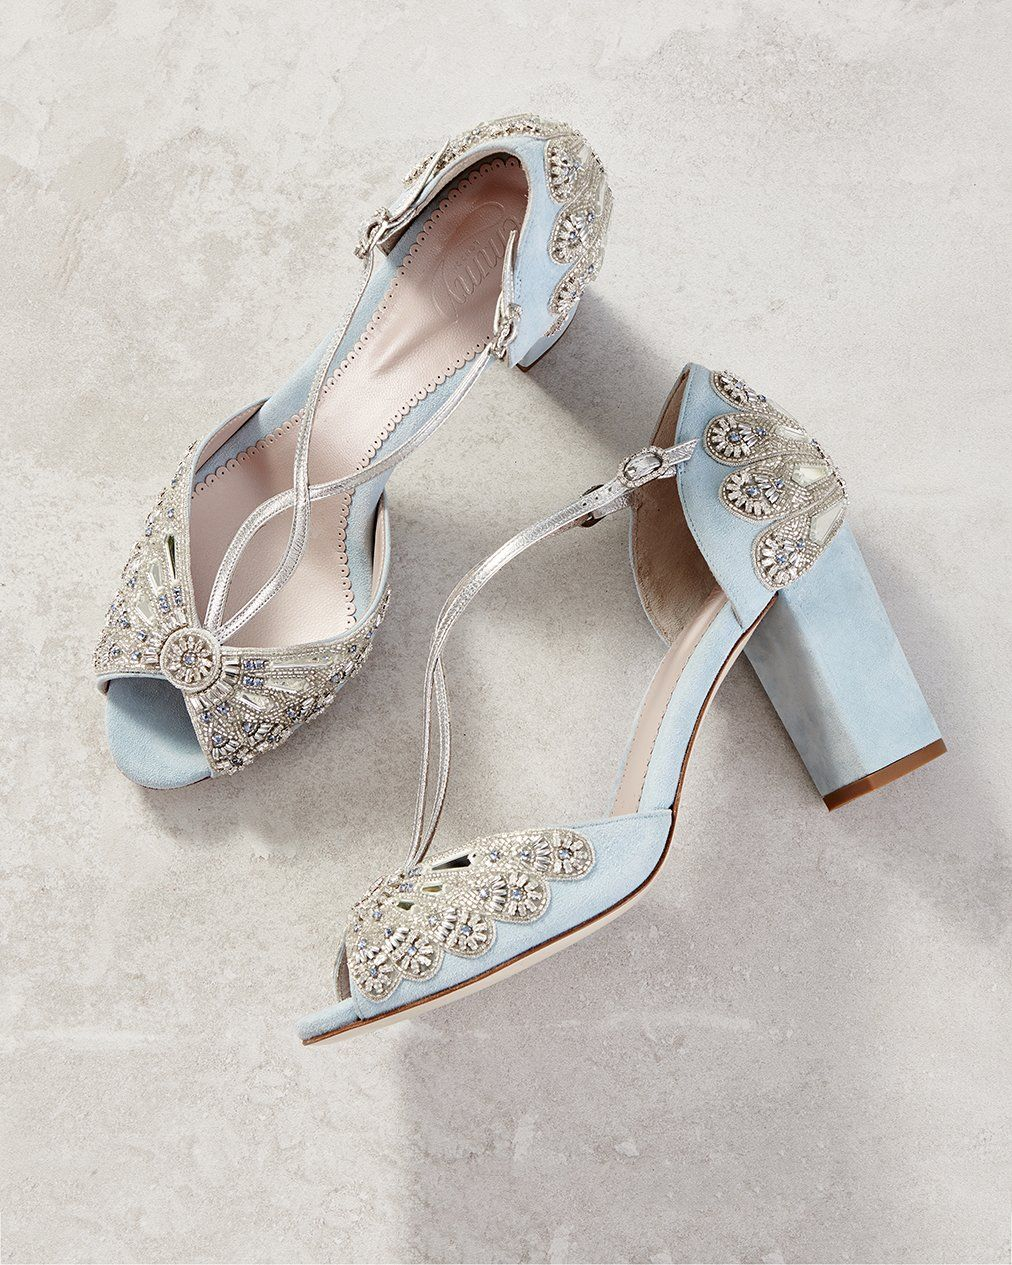 Bluebell Block in 2020 Blue bridal shoes, Bridal shoes